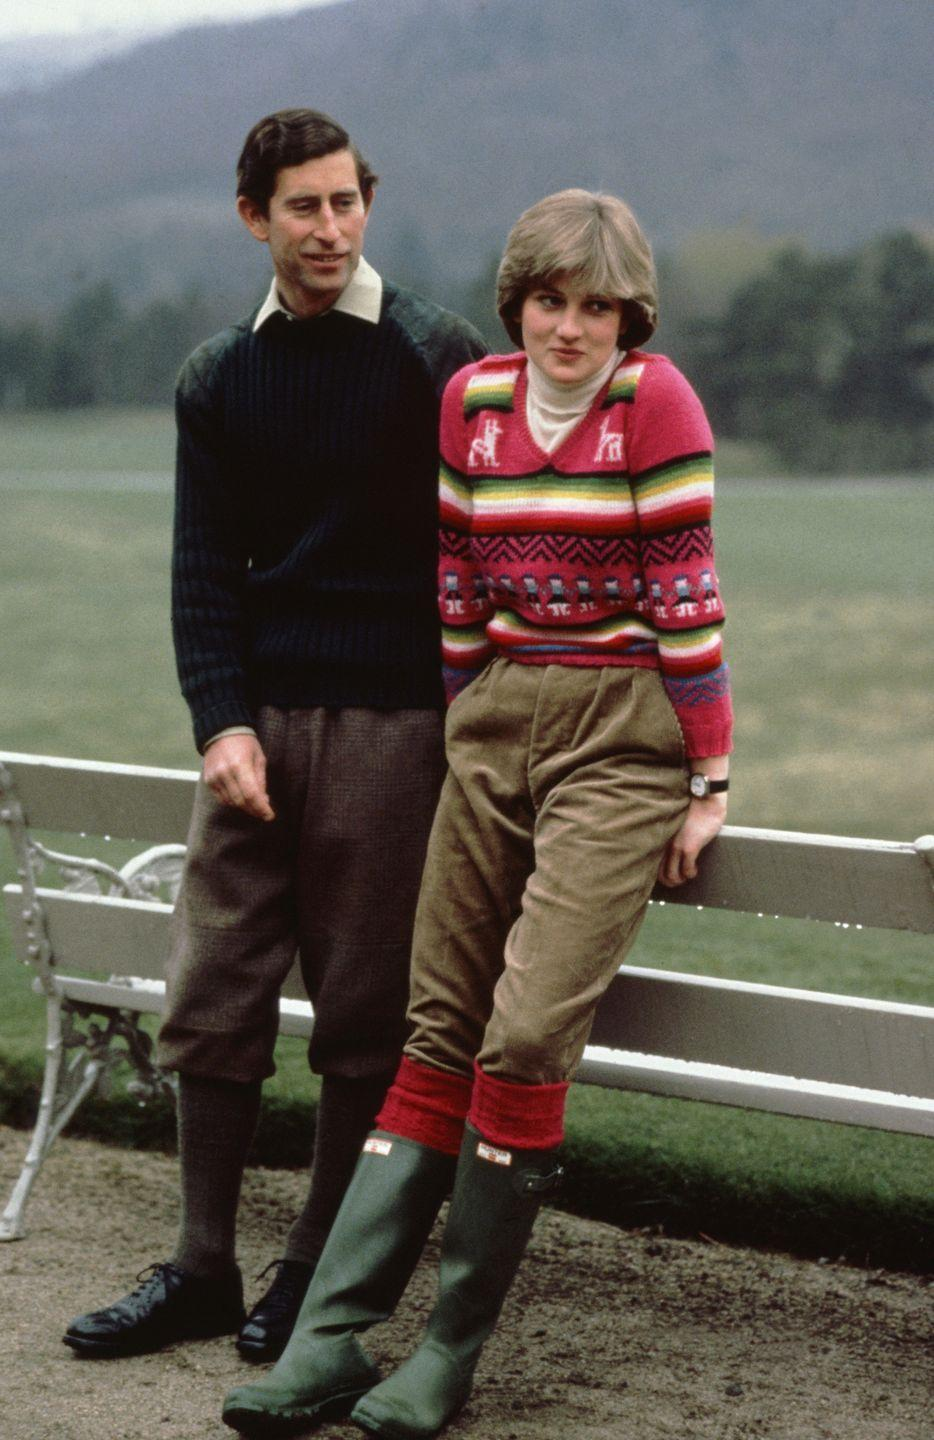 <p>Prince Charles and Lady Diana Spencer visit Balmoral and stay at Craigowan Lodge on the estate during their engagement.</p>